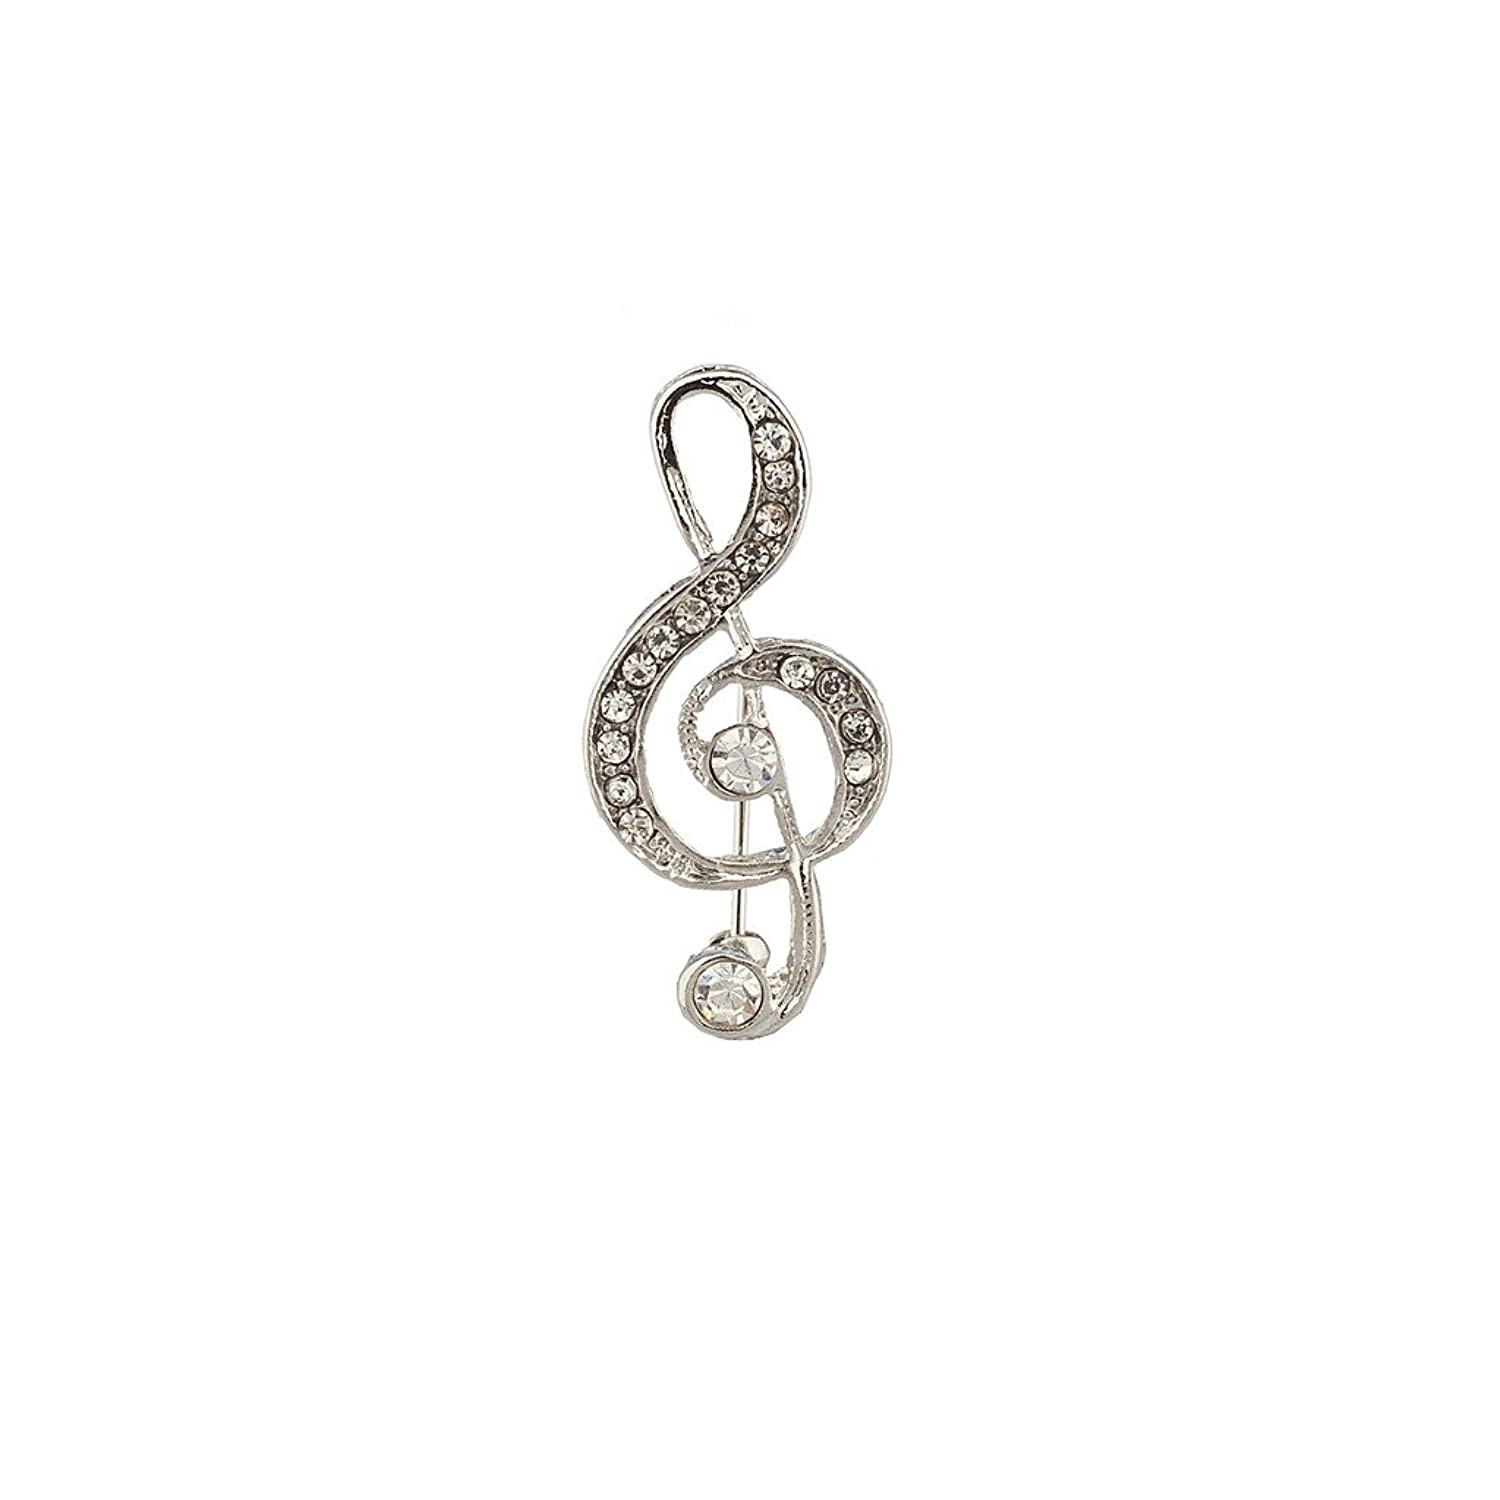 Lux Accessories Treble Clef Music Love Pave Crystal Pin Brooch.